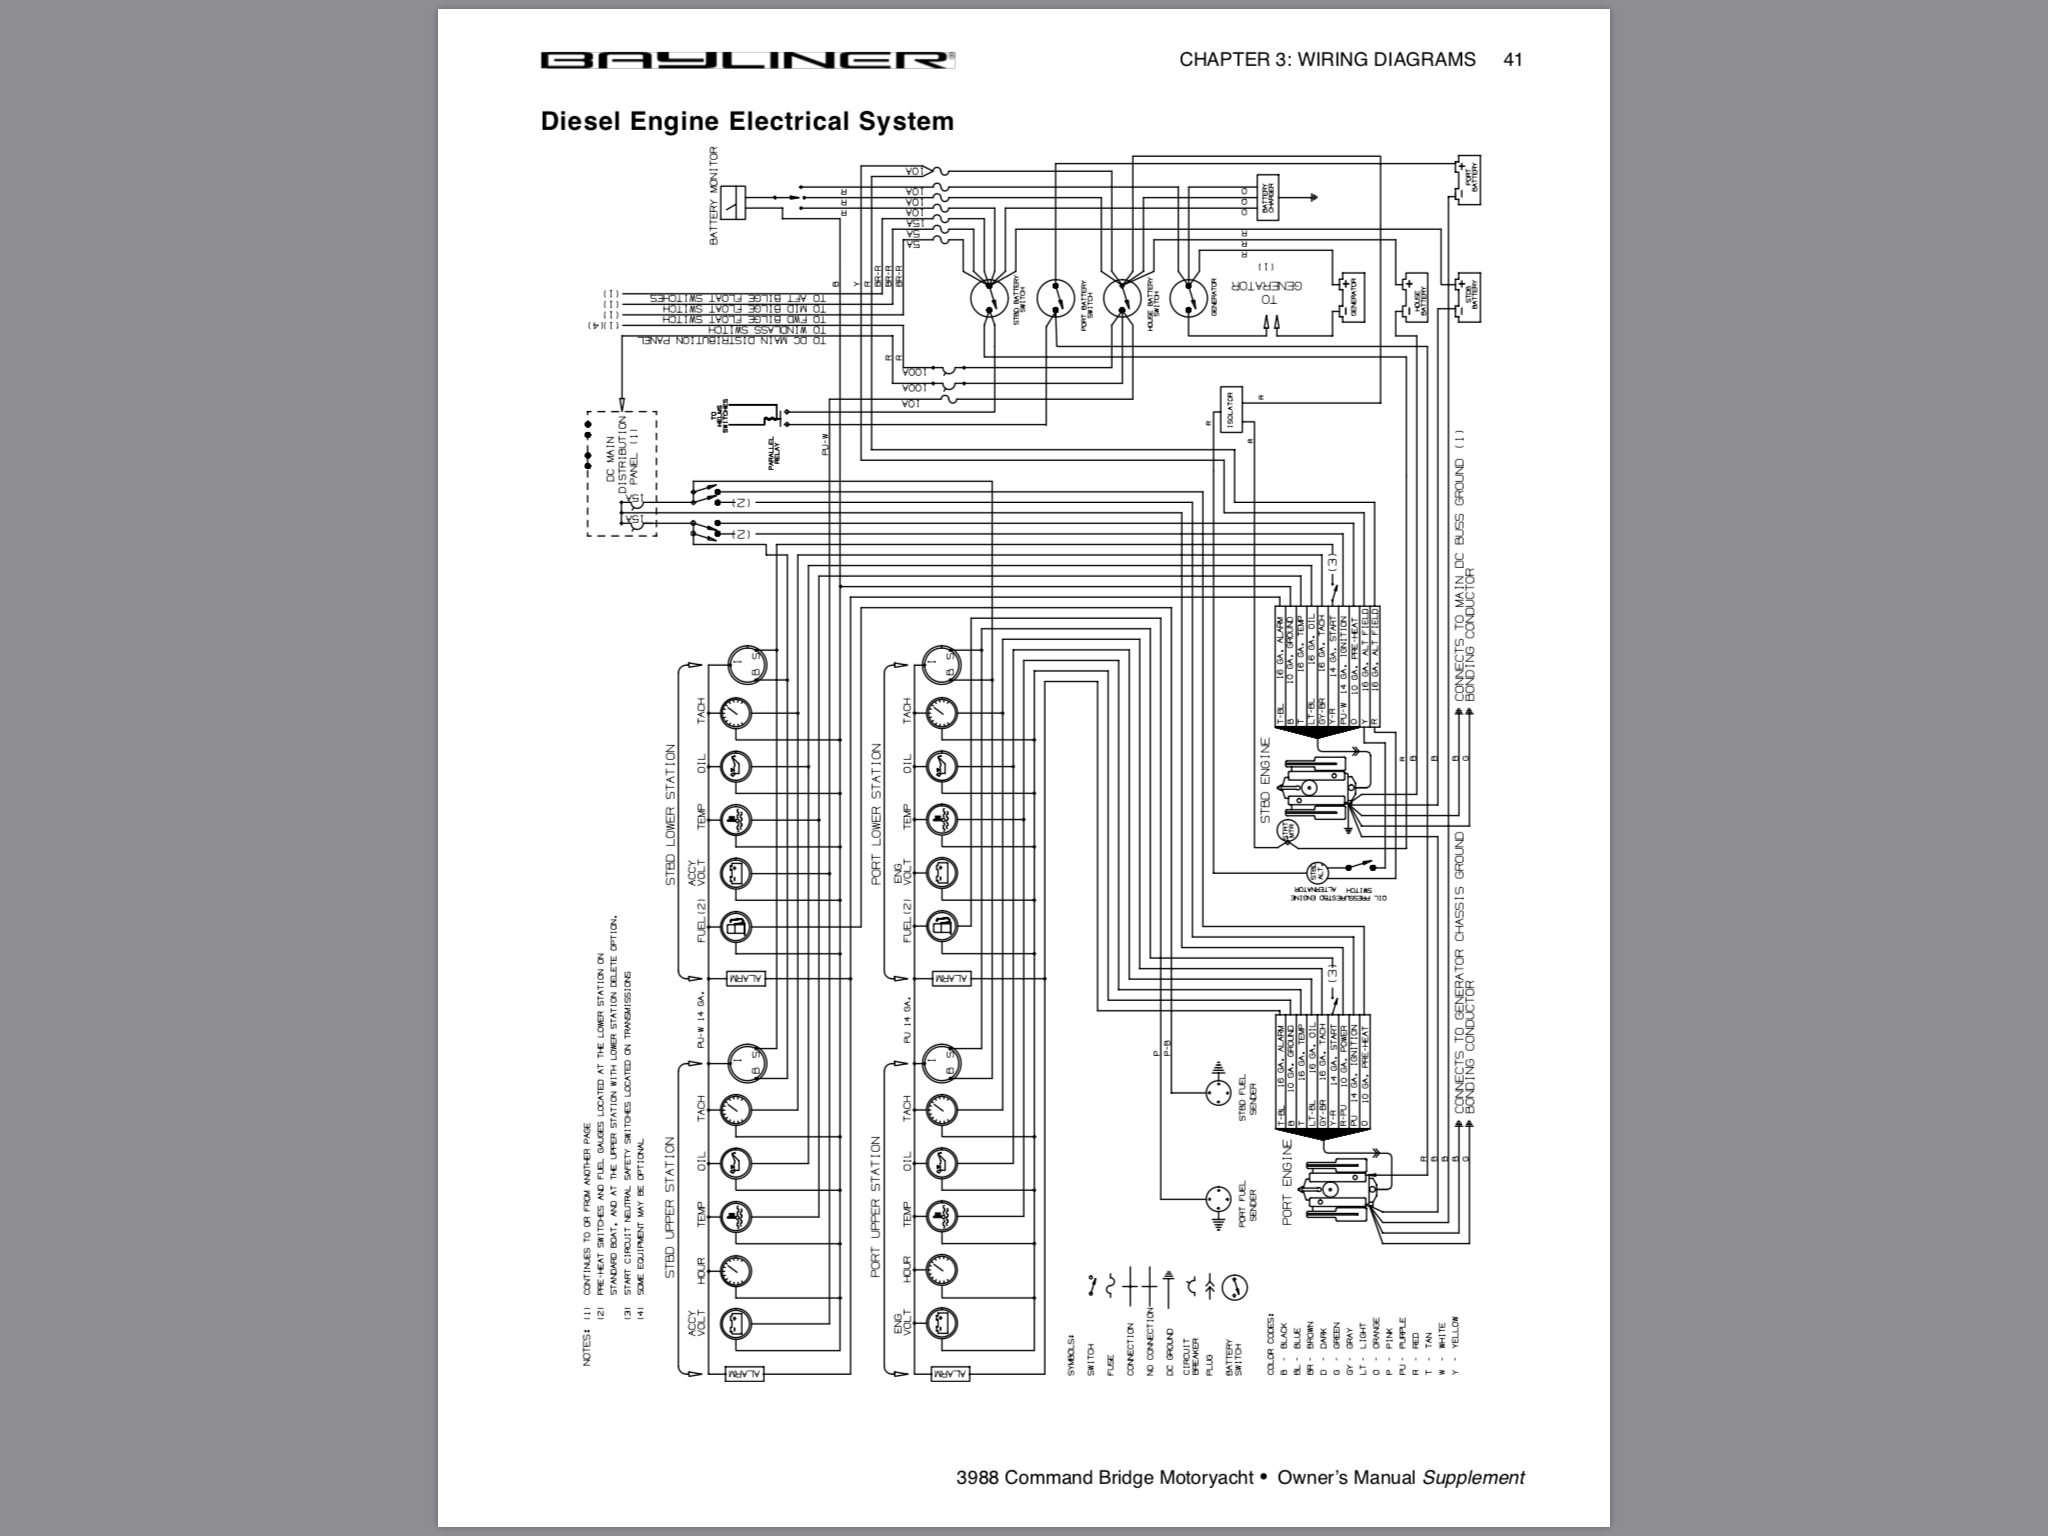 Bayliner Wiring Diagram 2003 Jeep Wrangler Radio Wiring Diagram Begeboy Wiring Diagram Source